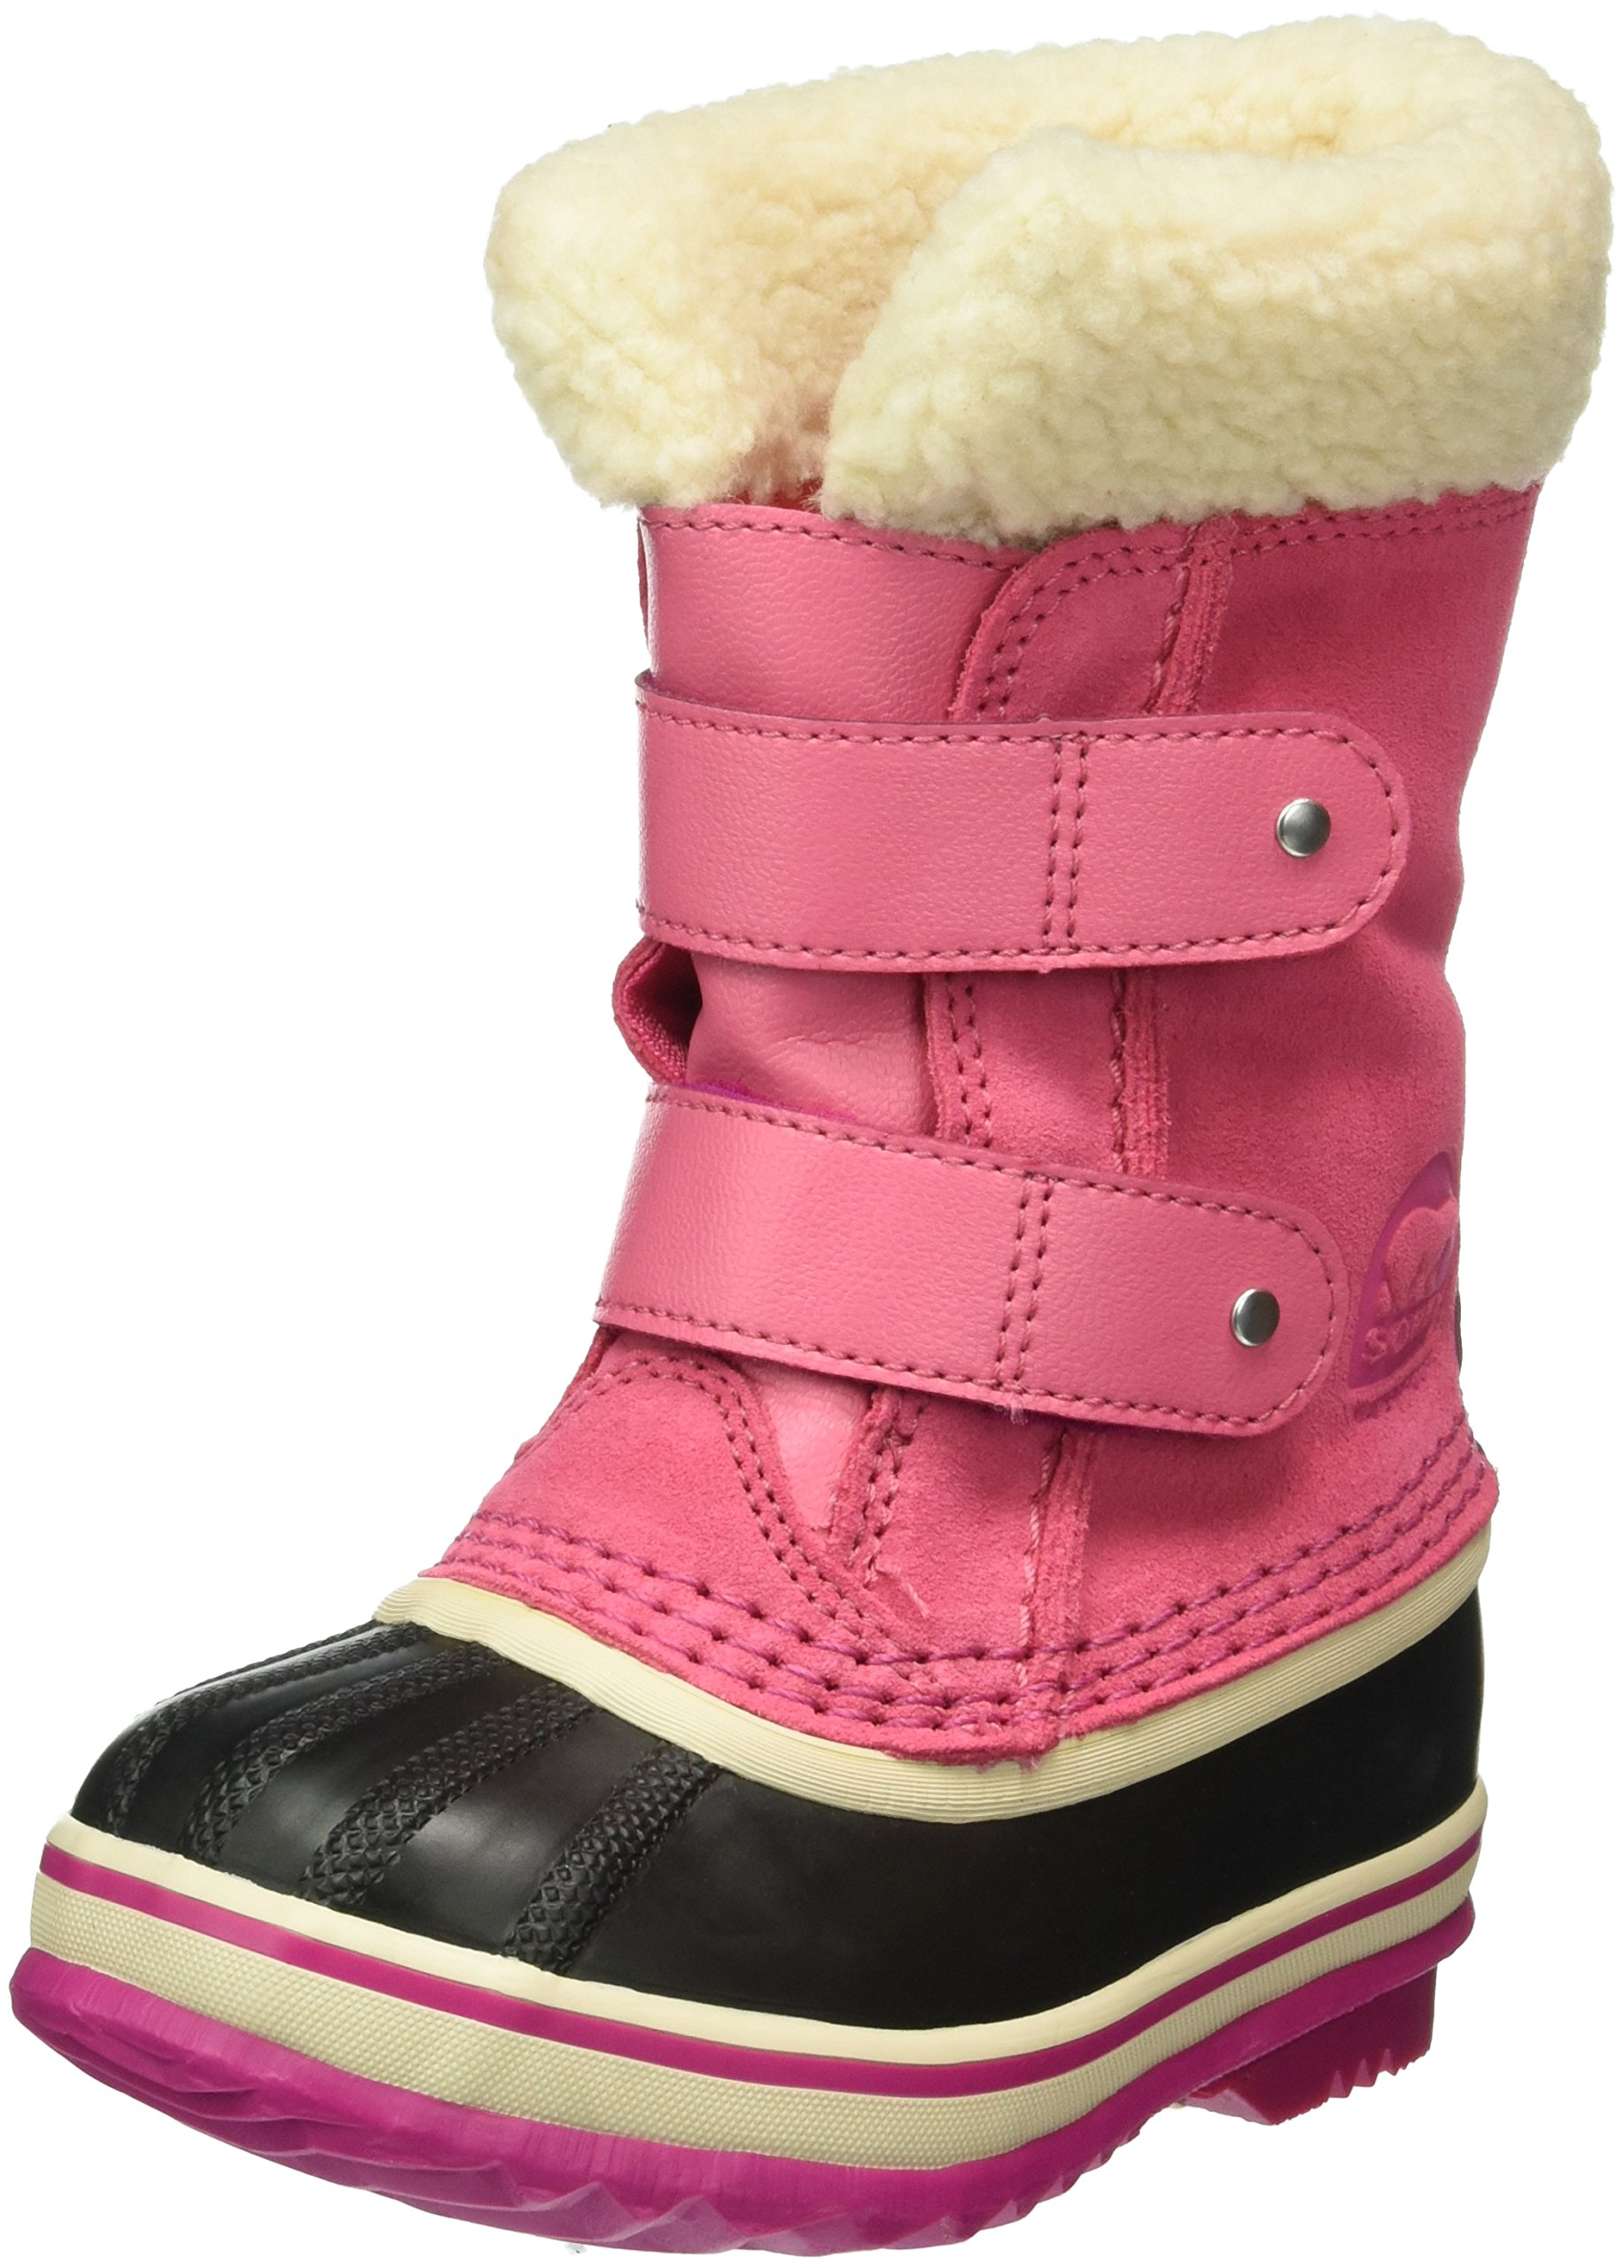 Sorel Childrens 1964 Pac Strap Snow Boot, Pink - 12 M US Little Kid